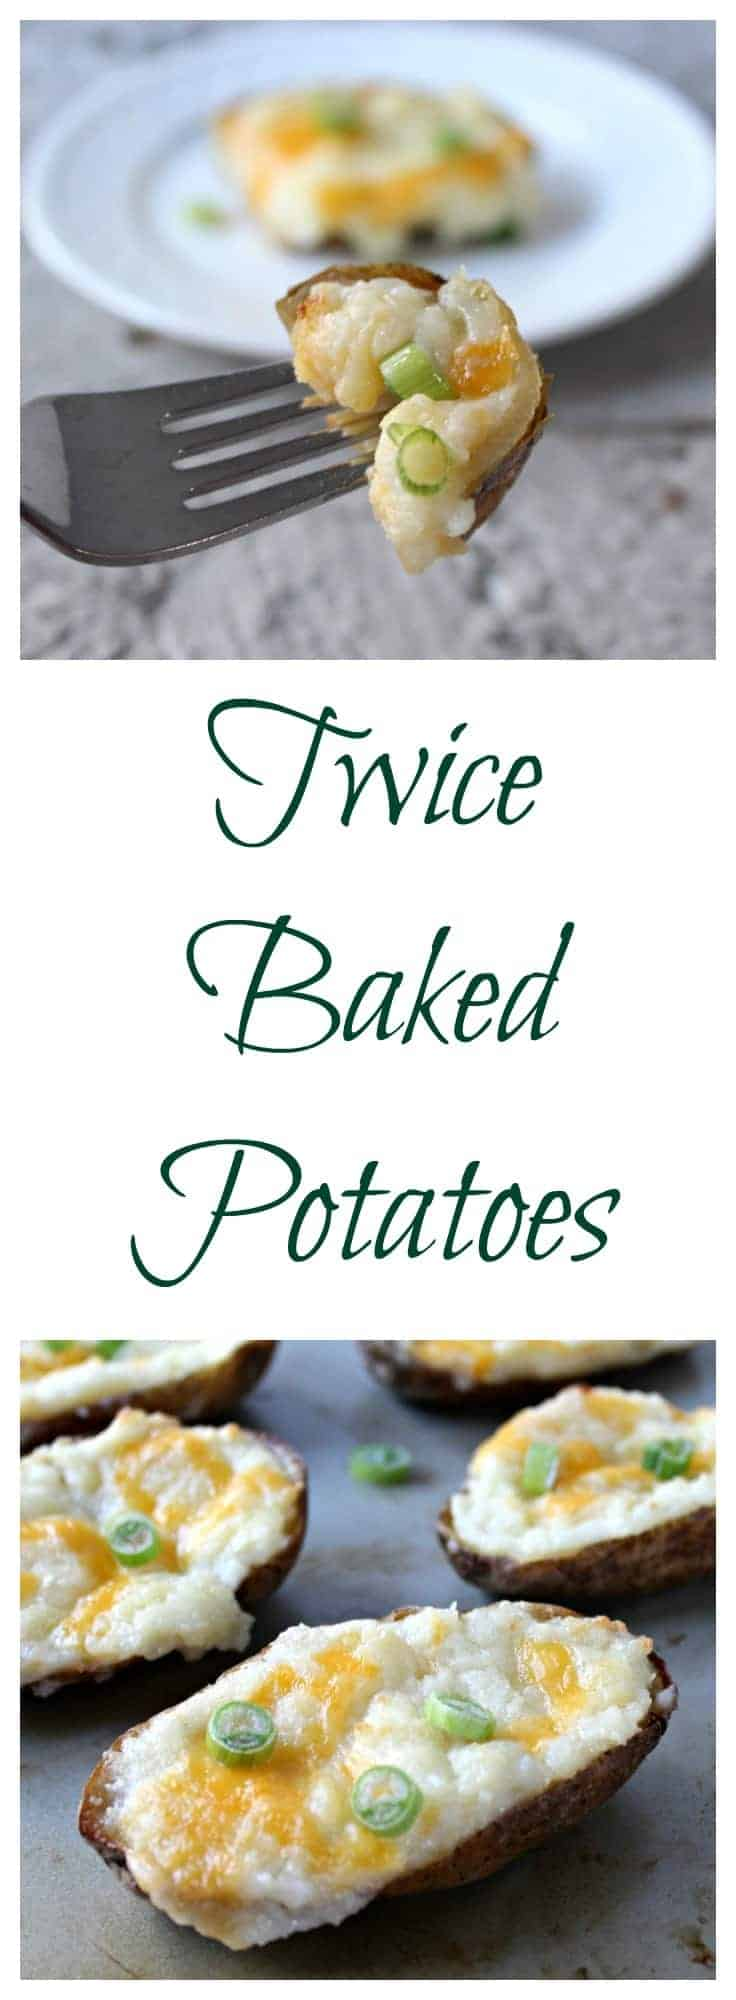 These delicious potatoes can be made ahead of time and baked just before dinner!